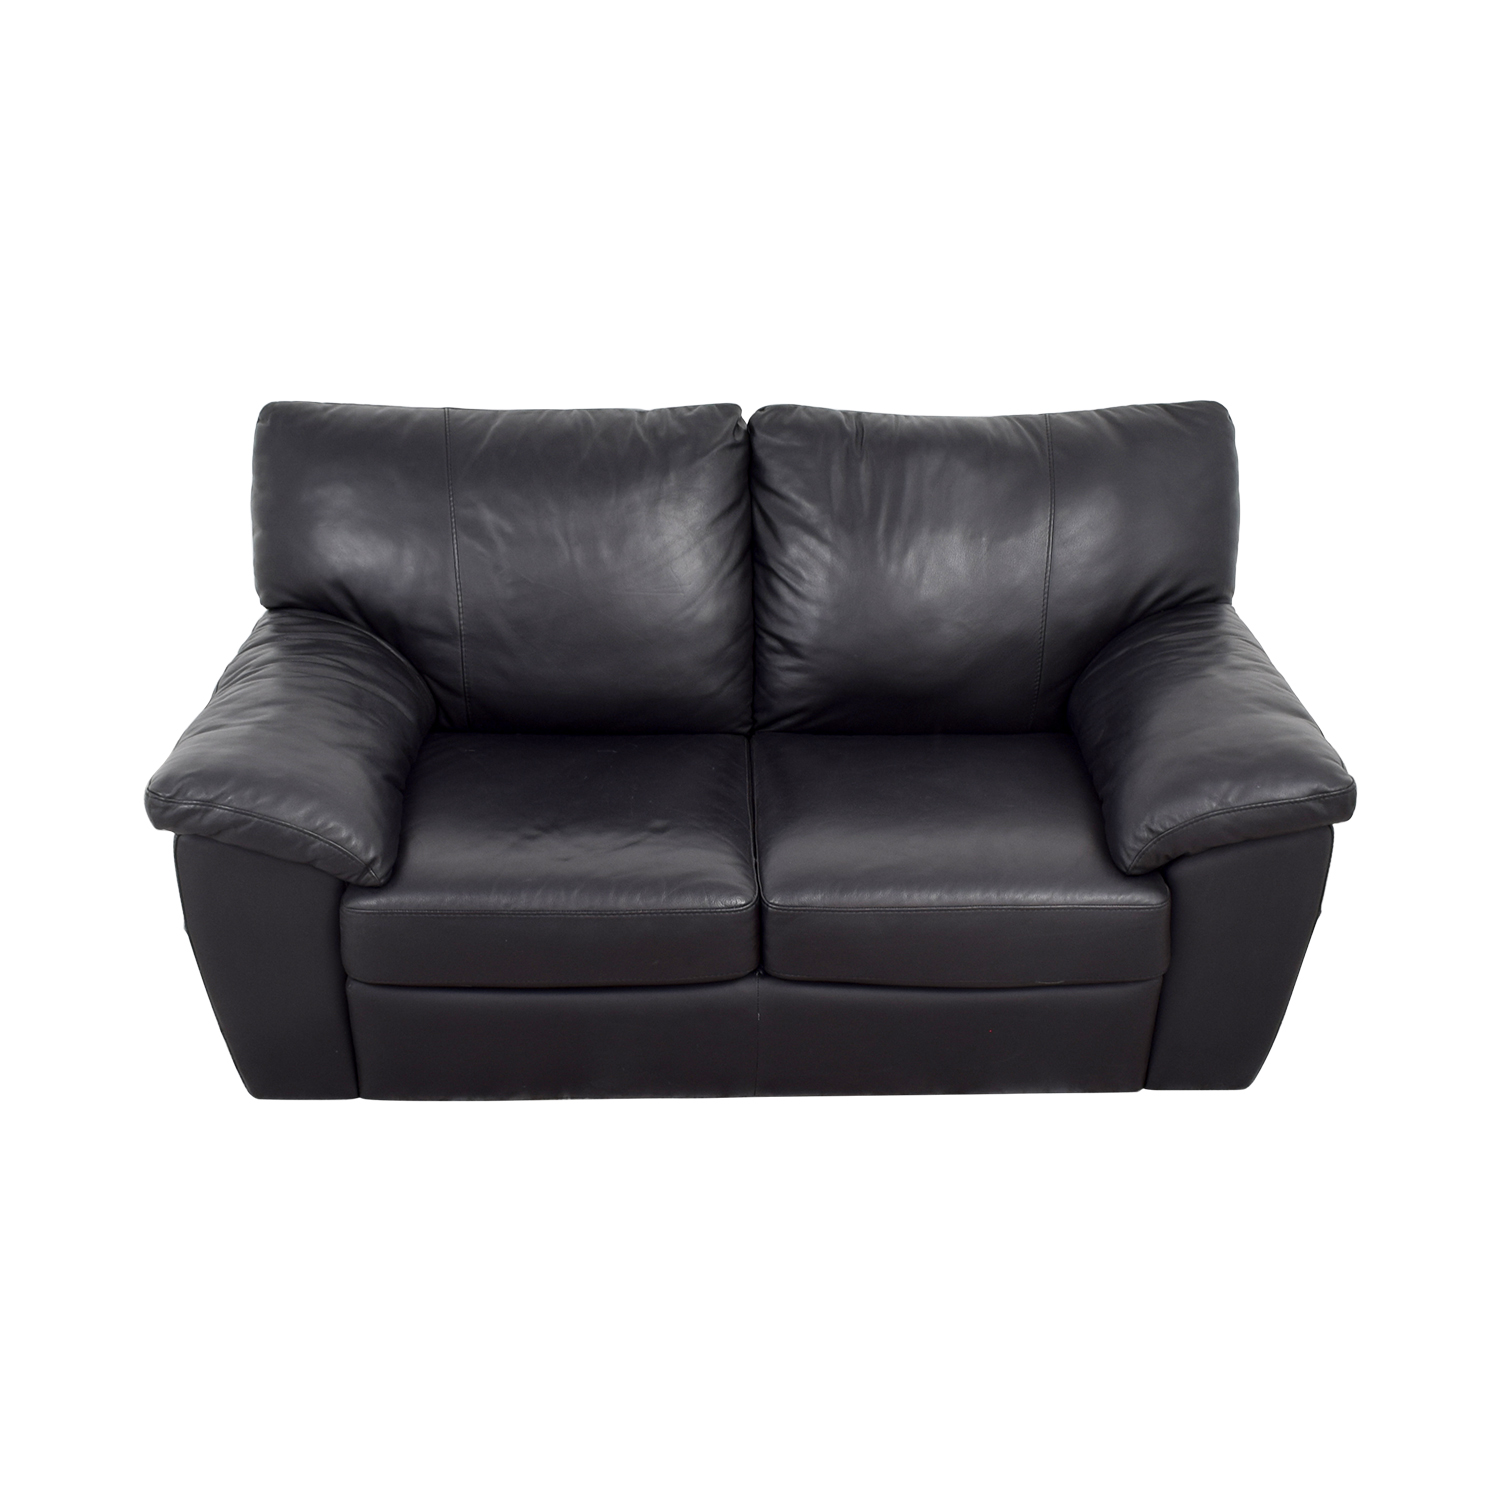 shop IKEA Black Leather Two-Cushion Couch IKEA